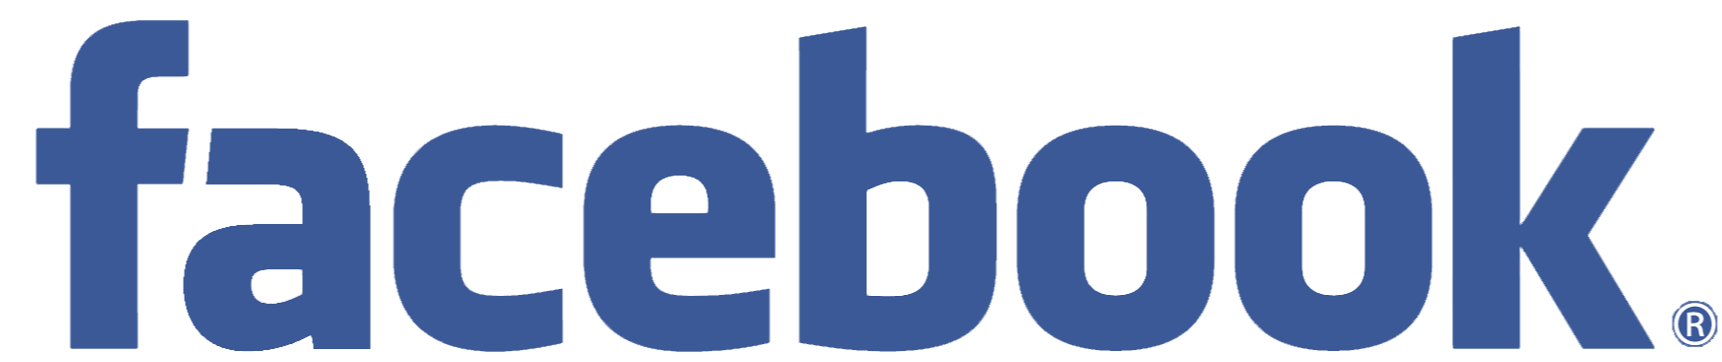 Facebook logo | Arrangr integrates with Facebook to let you sign in with Facebook, as well as automatically populate some of your Arrangr profile with your information from Facebook